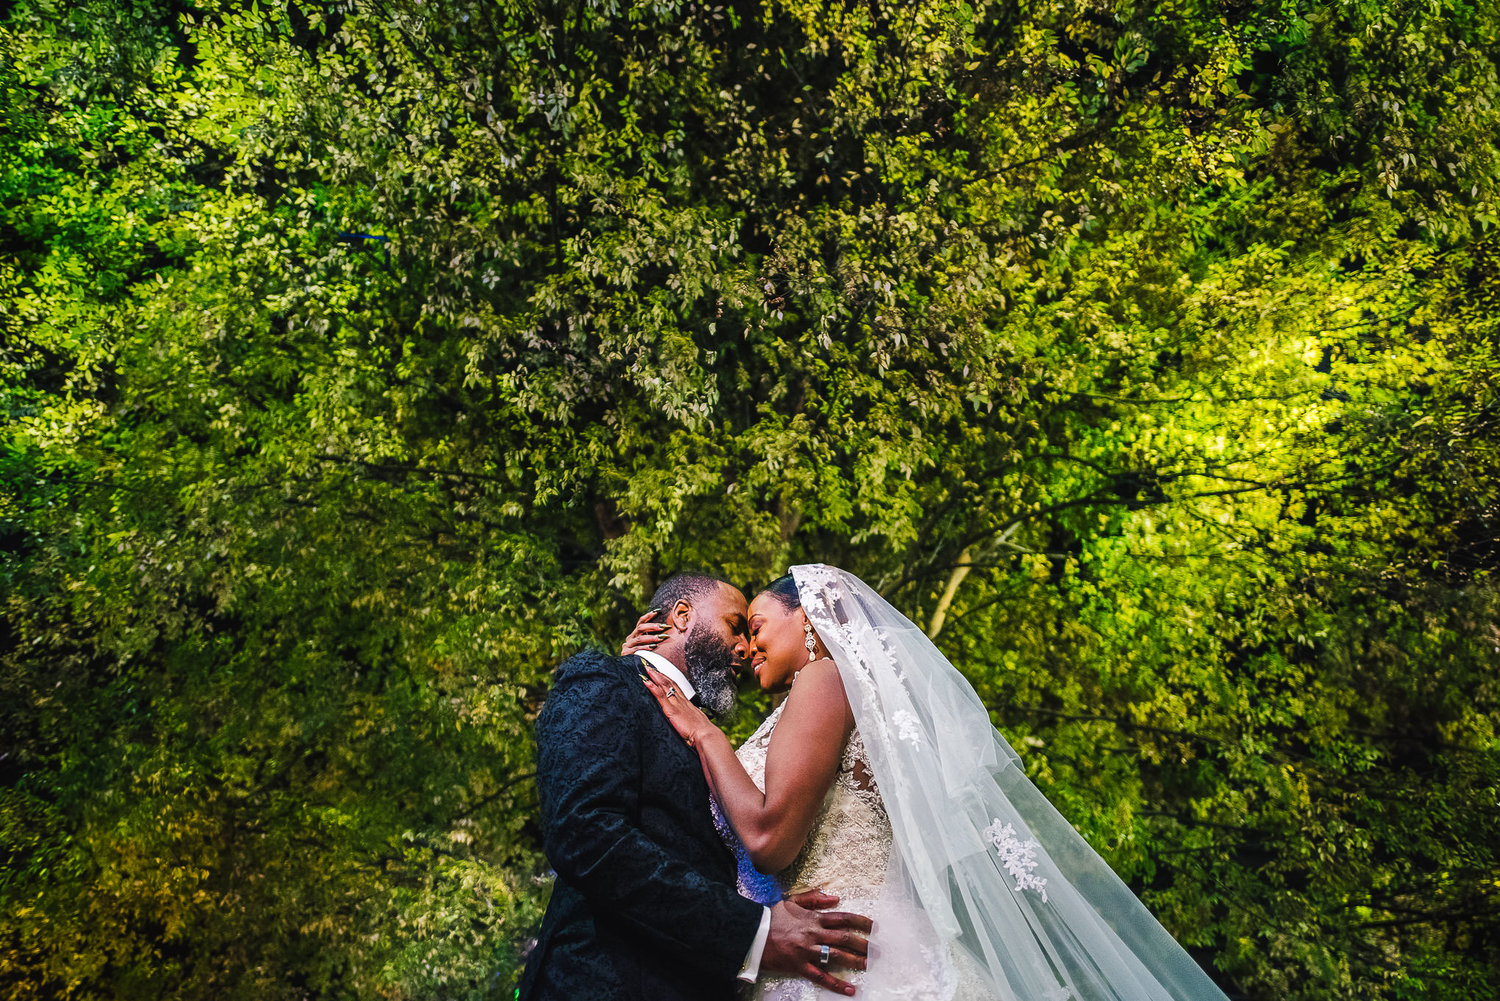 Bride and groom pose against canopy of trees - photo by Adibe Photography